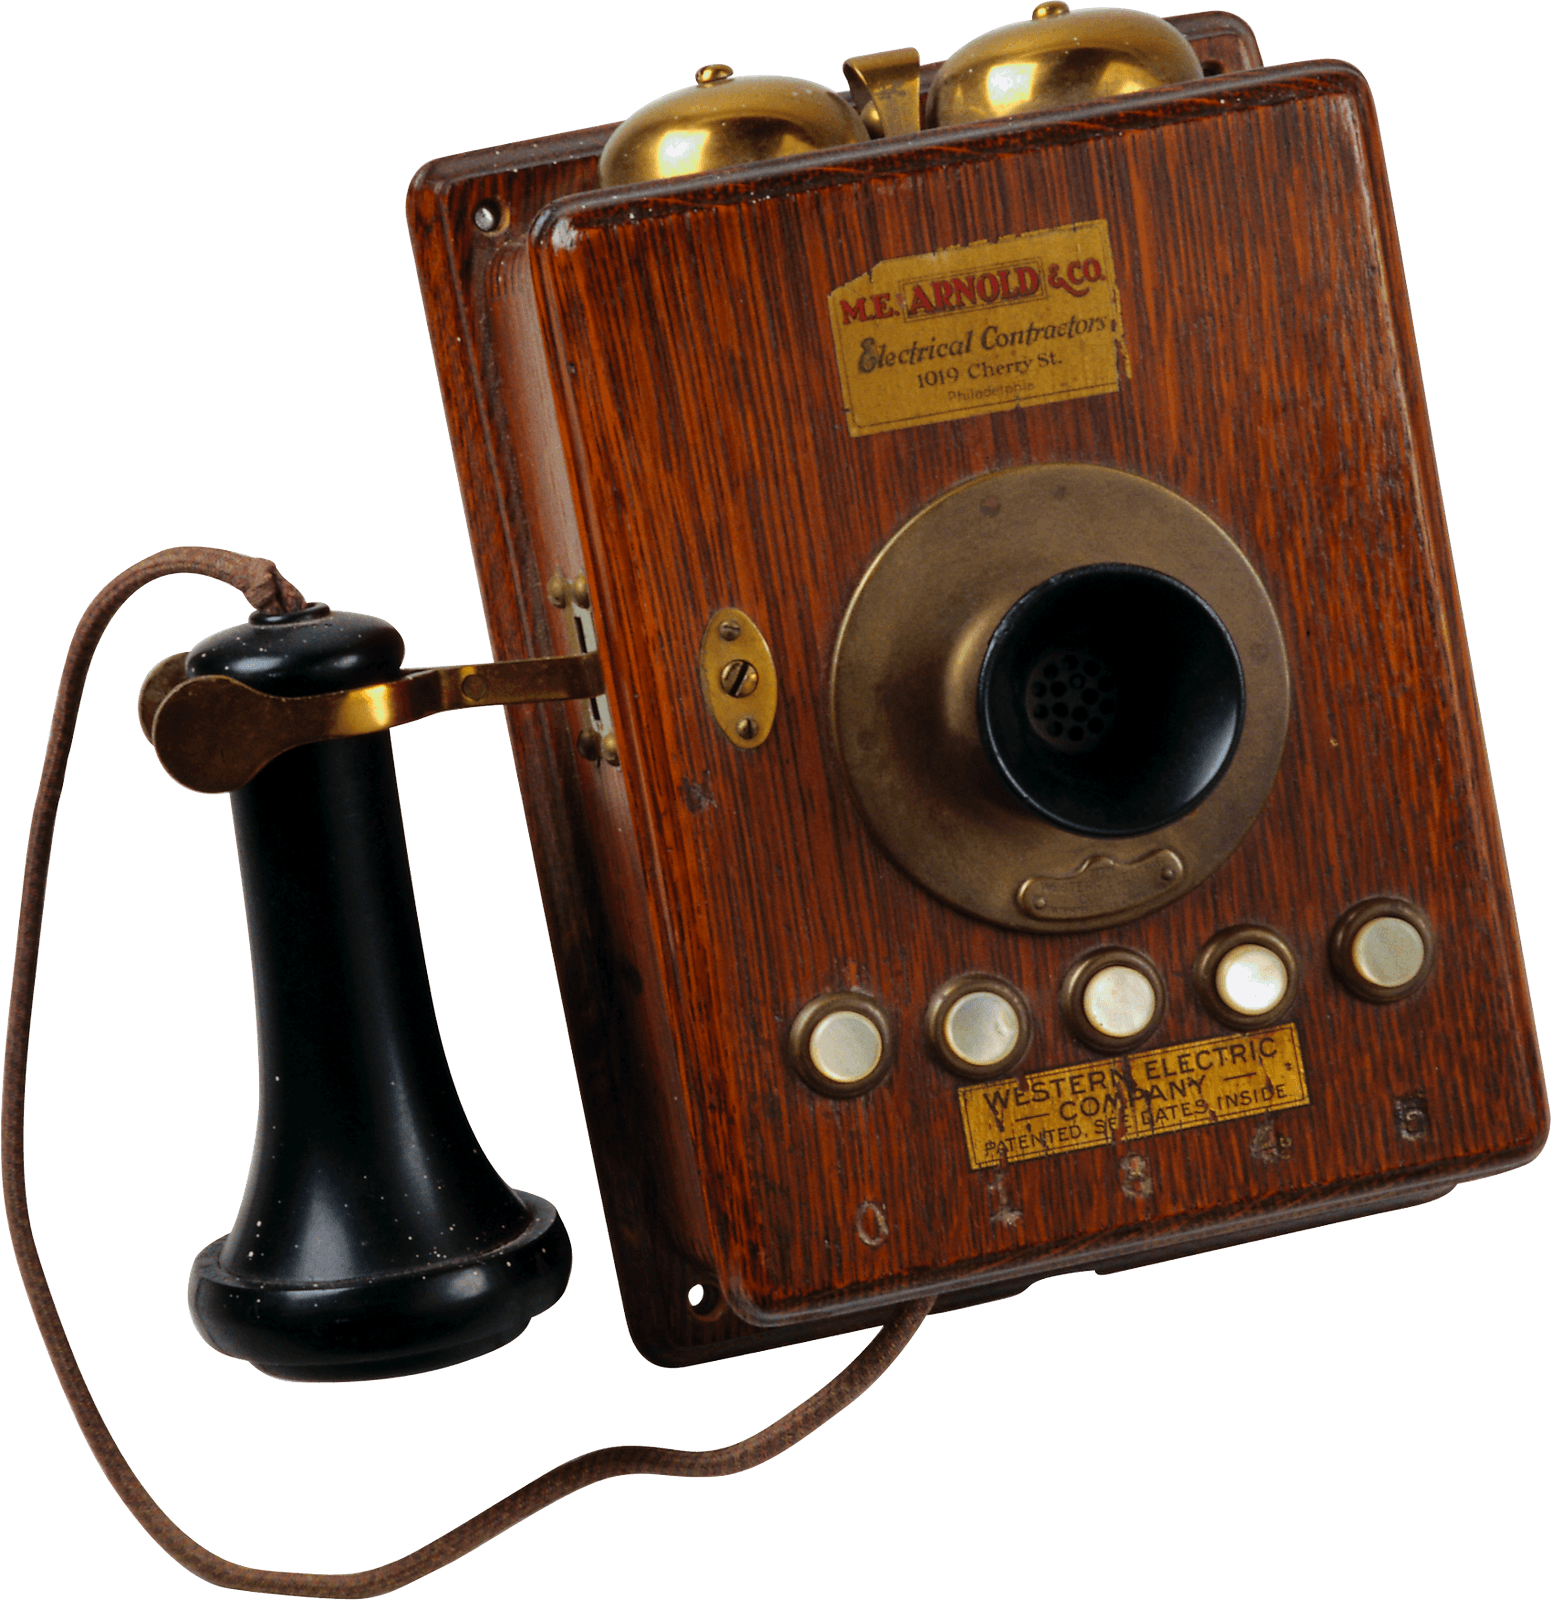 Western electric transparent png. Phone clipart vintage phone